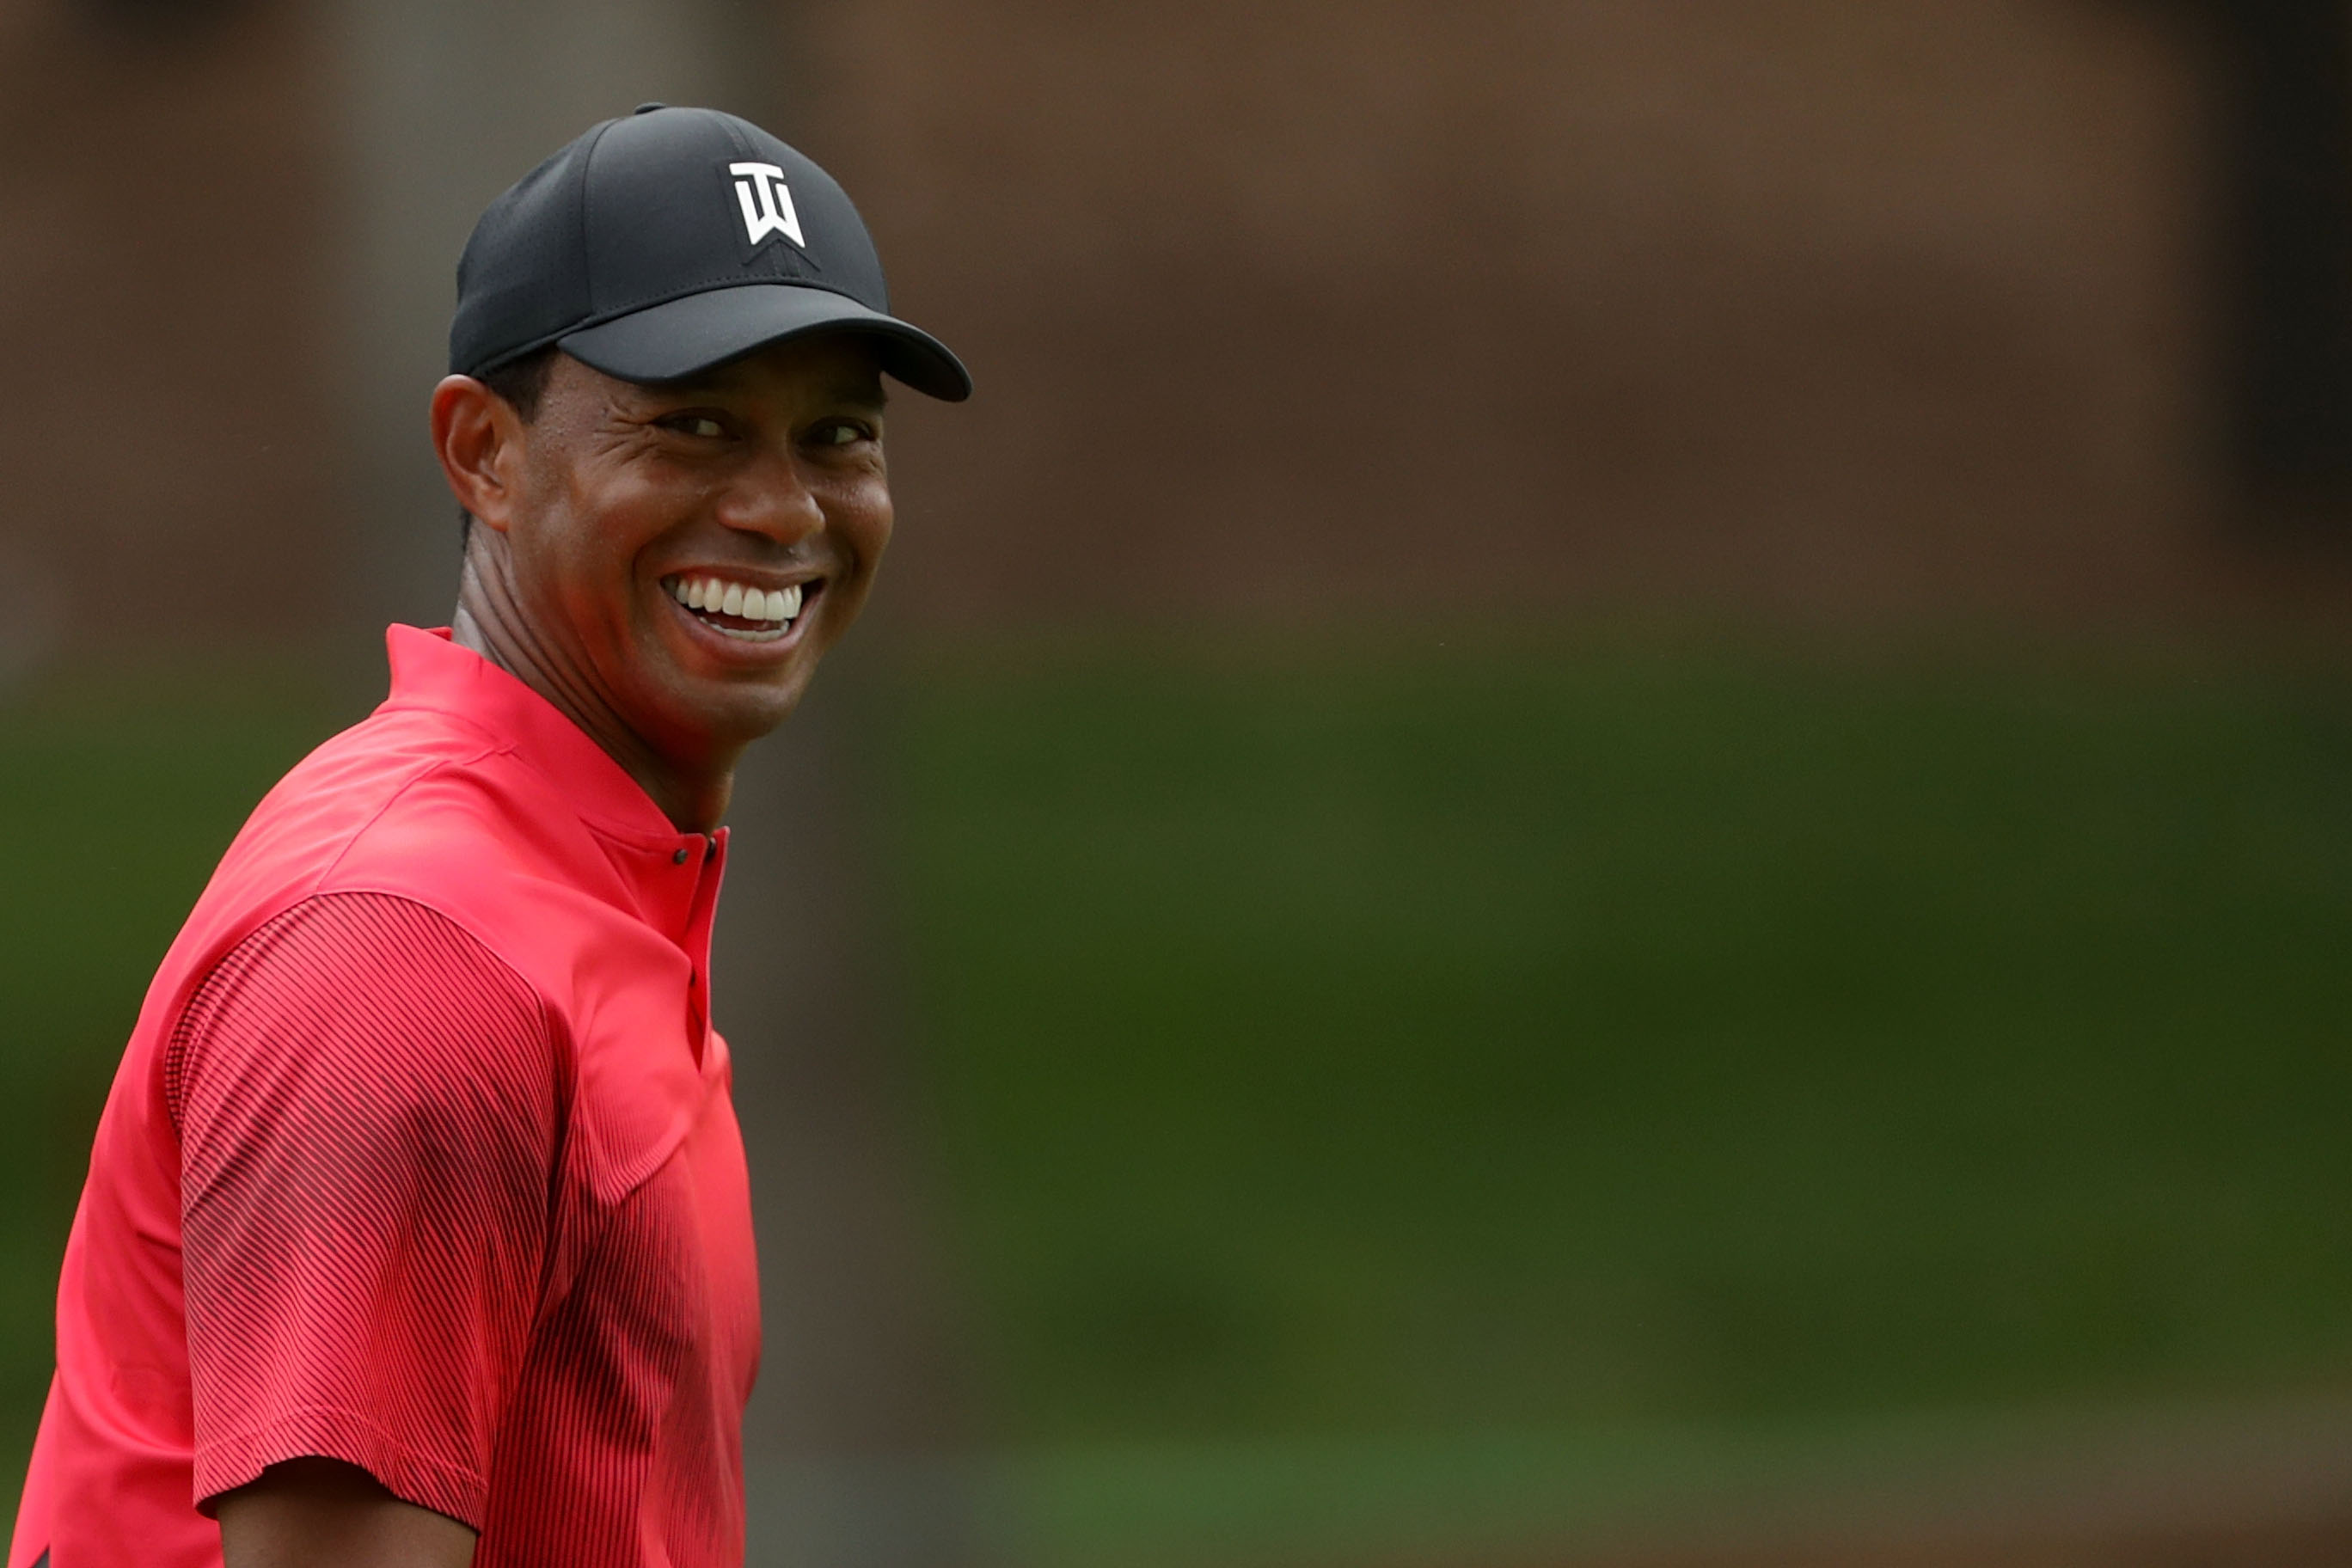 Tiger Woods Confirms He'll Play In The Open Championship At Carnoustie